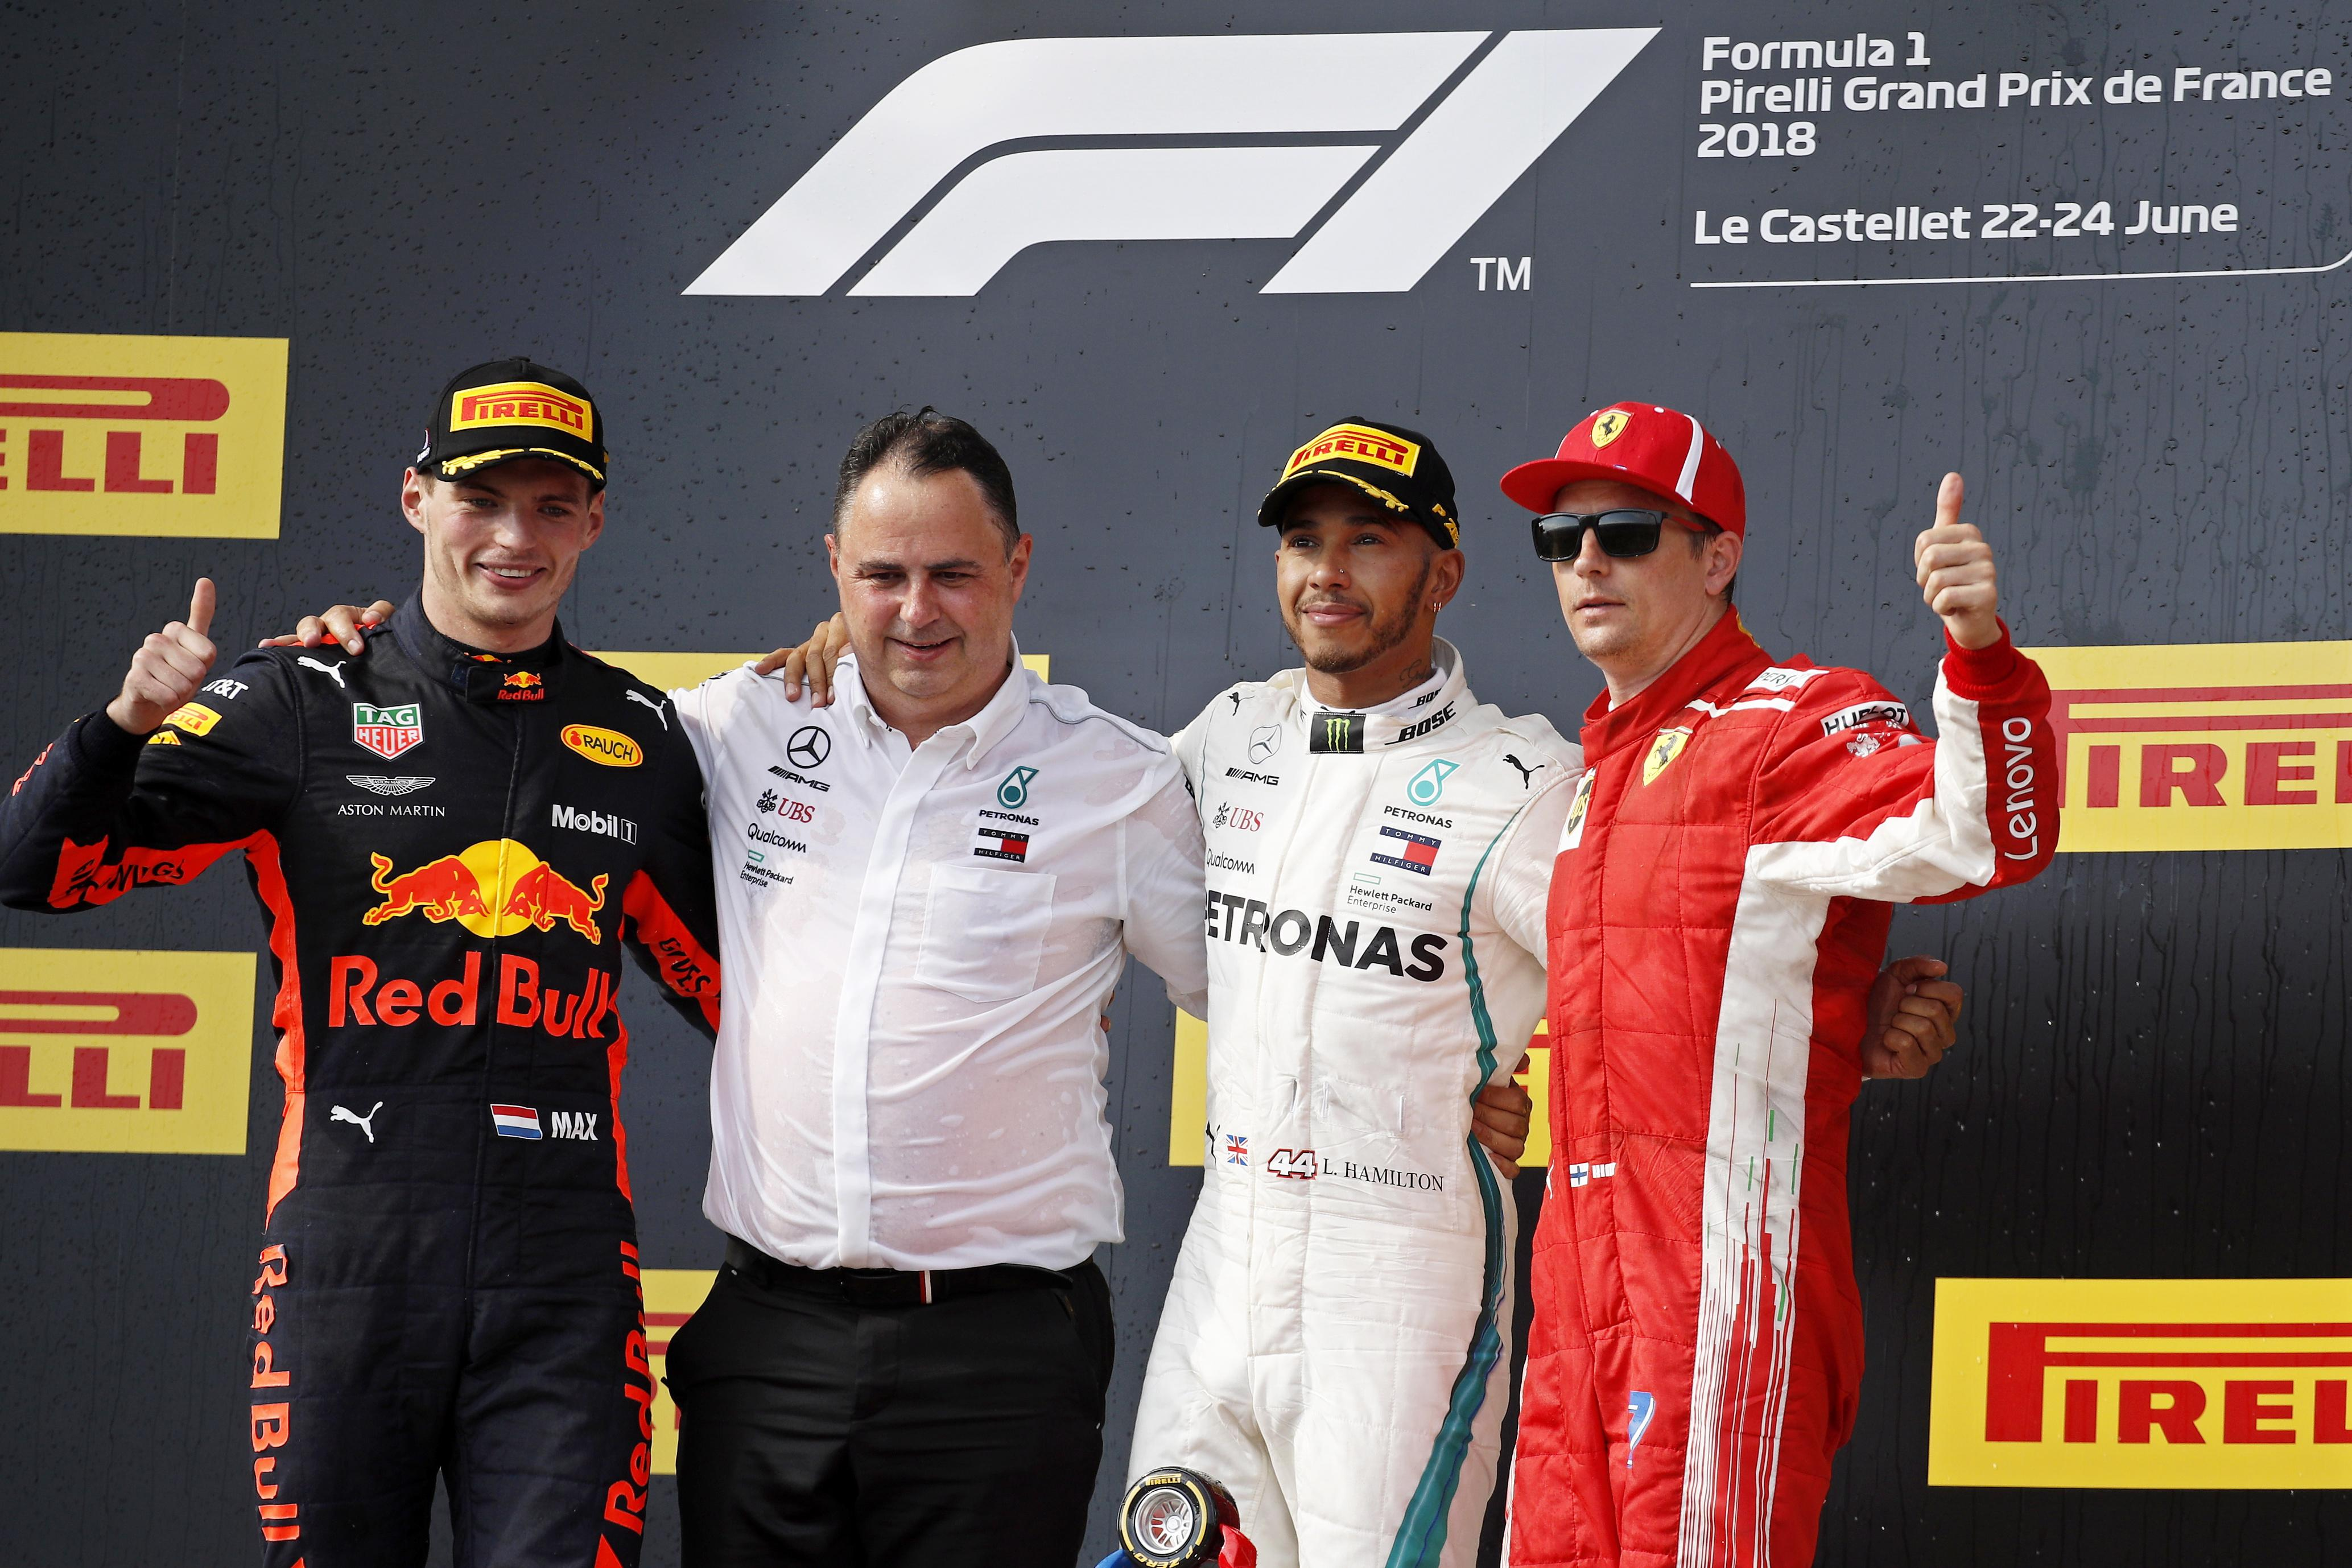 Lewis Hamilton celebrates on the podium next to team manager Ron Meadows, Max Verstappen and Kimi Raikkonen.